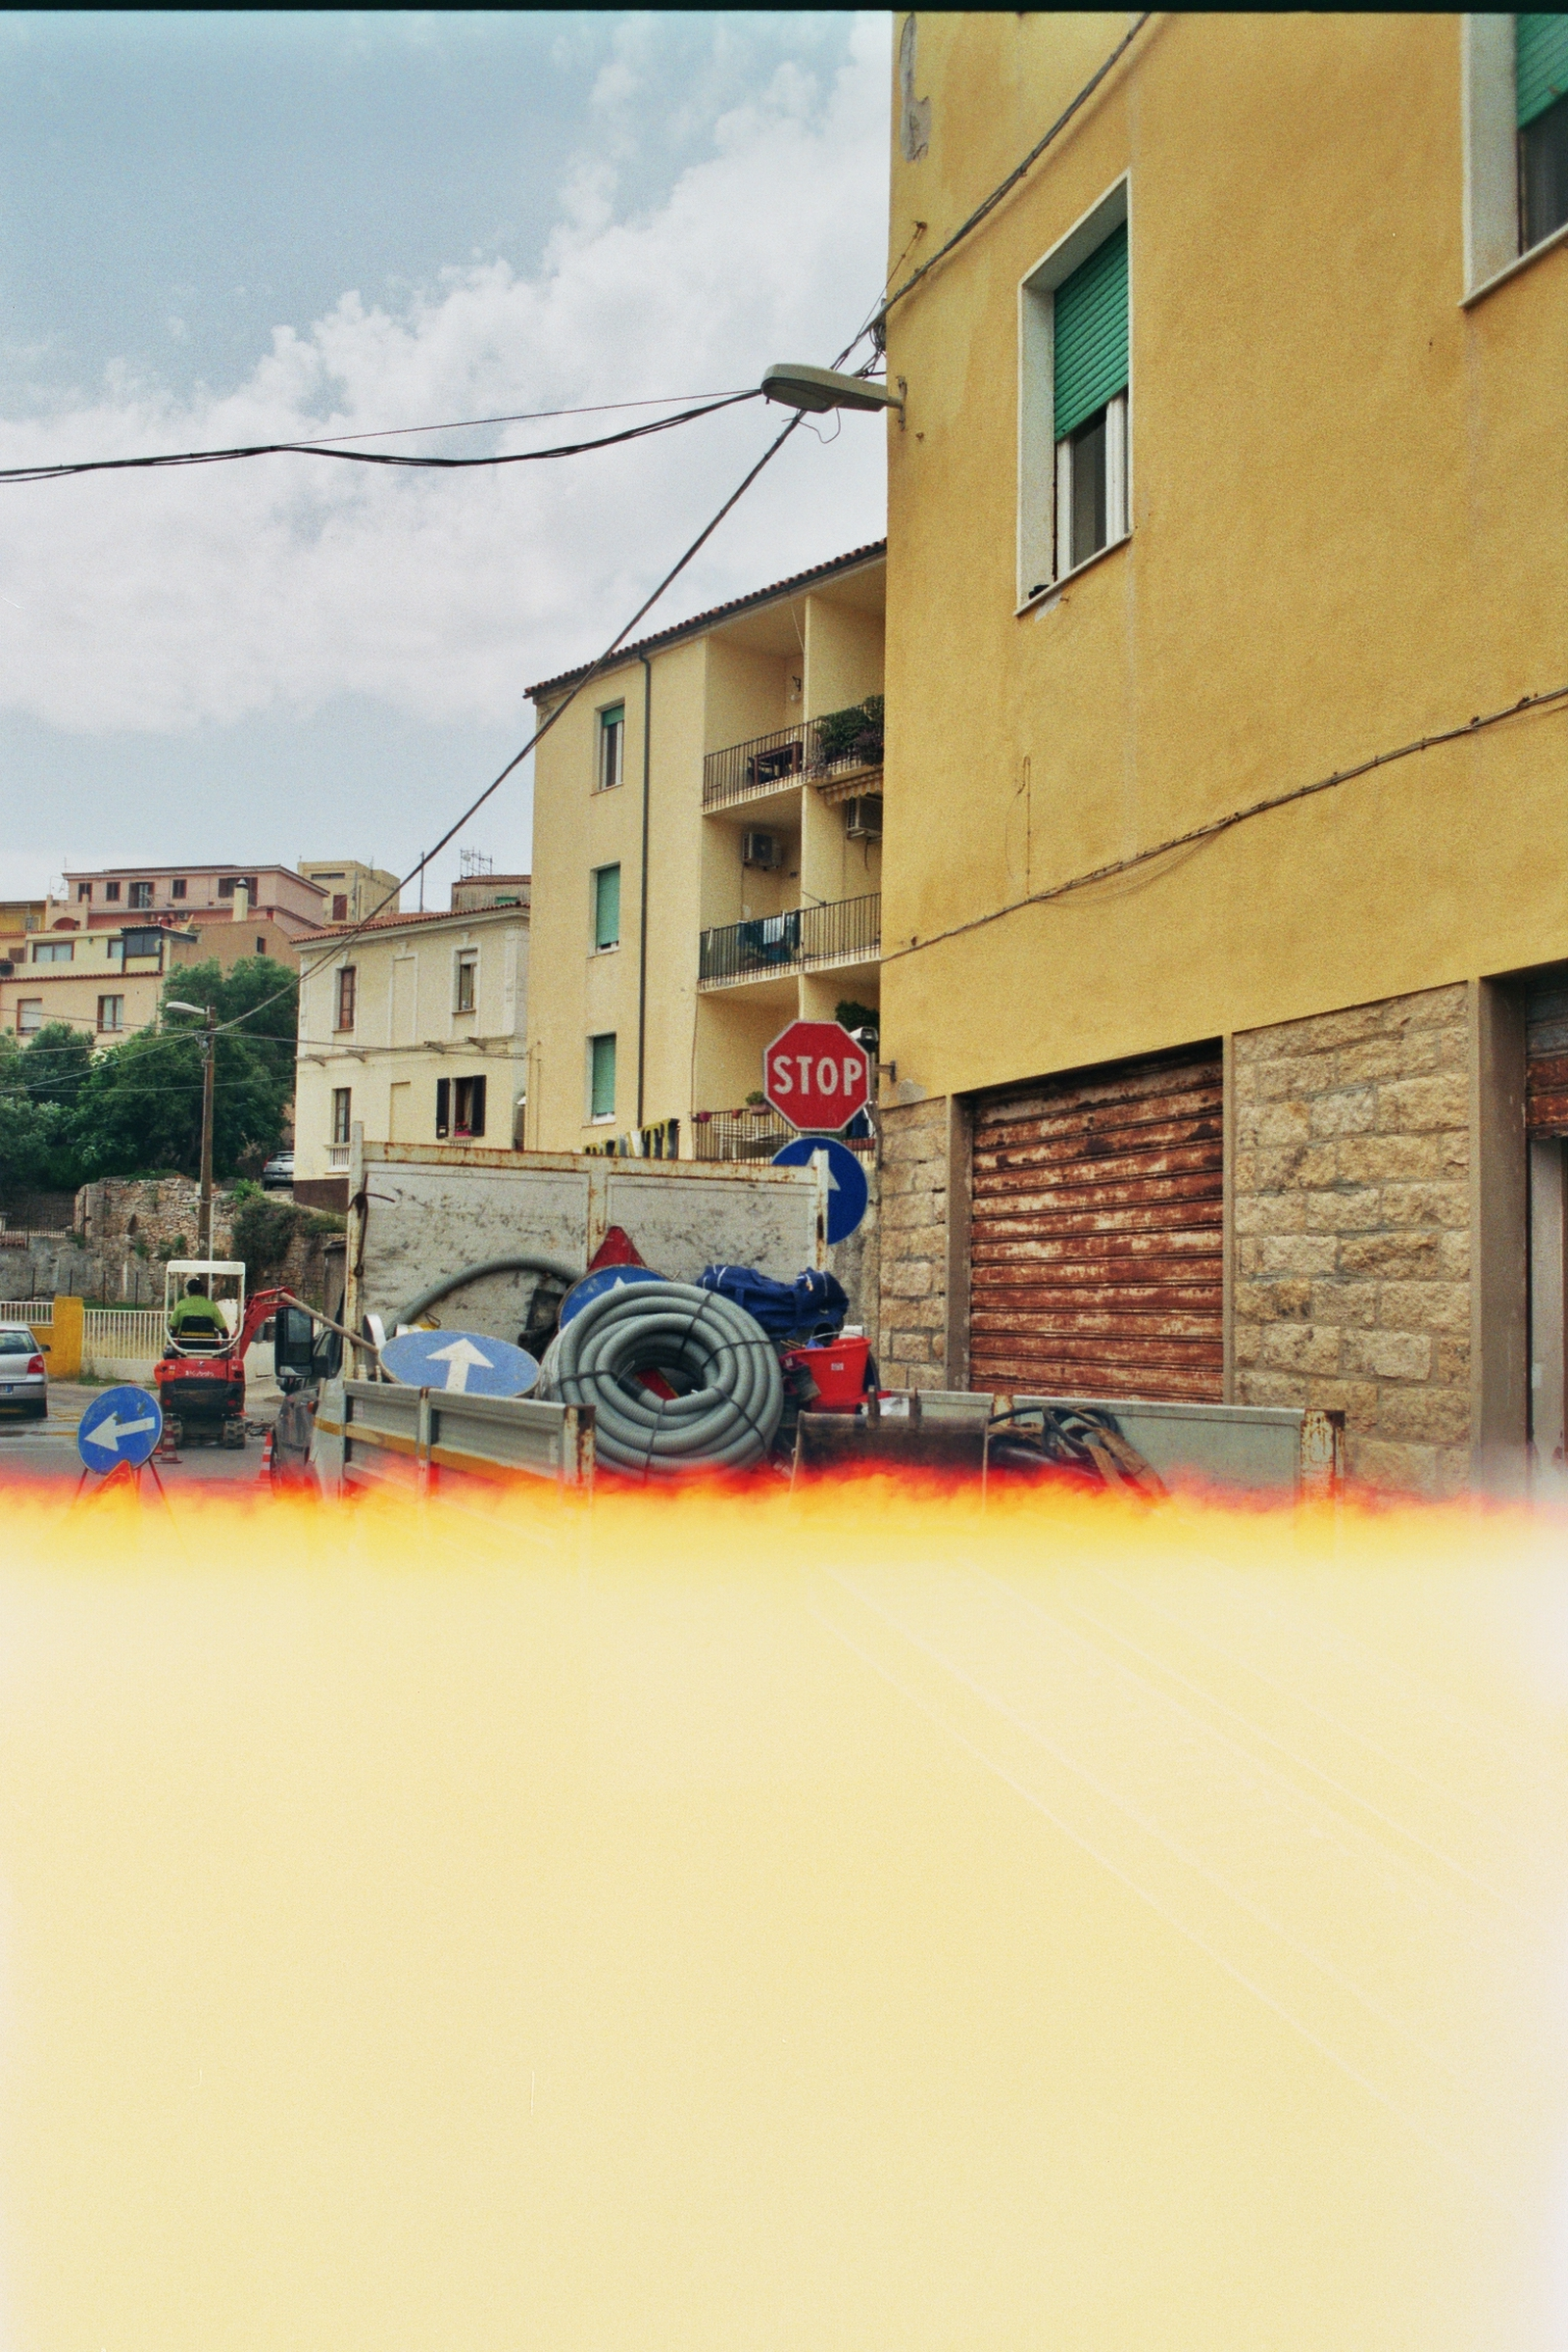 Italy, La Maddalena, 2018, film photography, Lewis Isbell